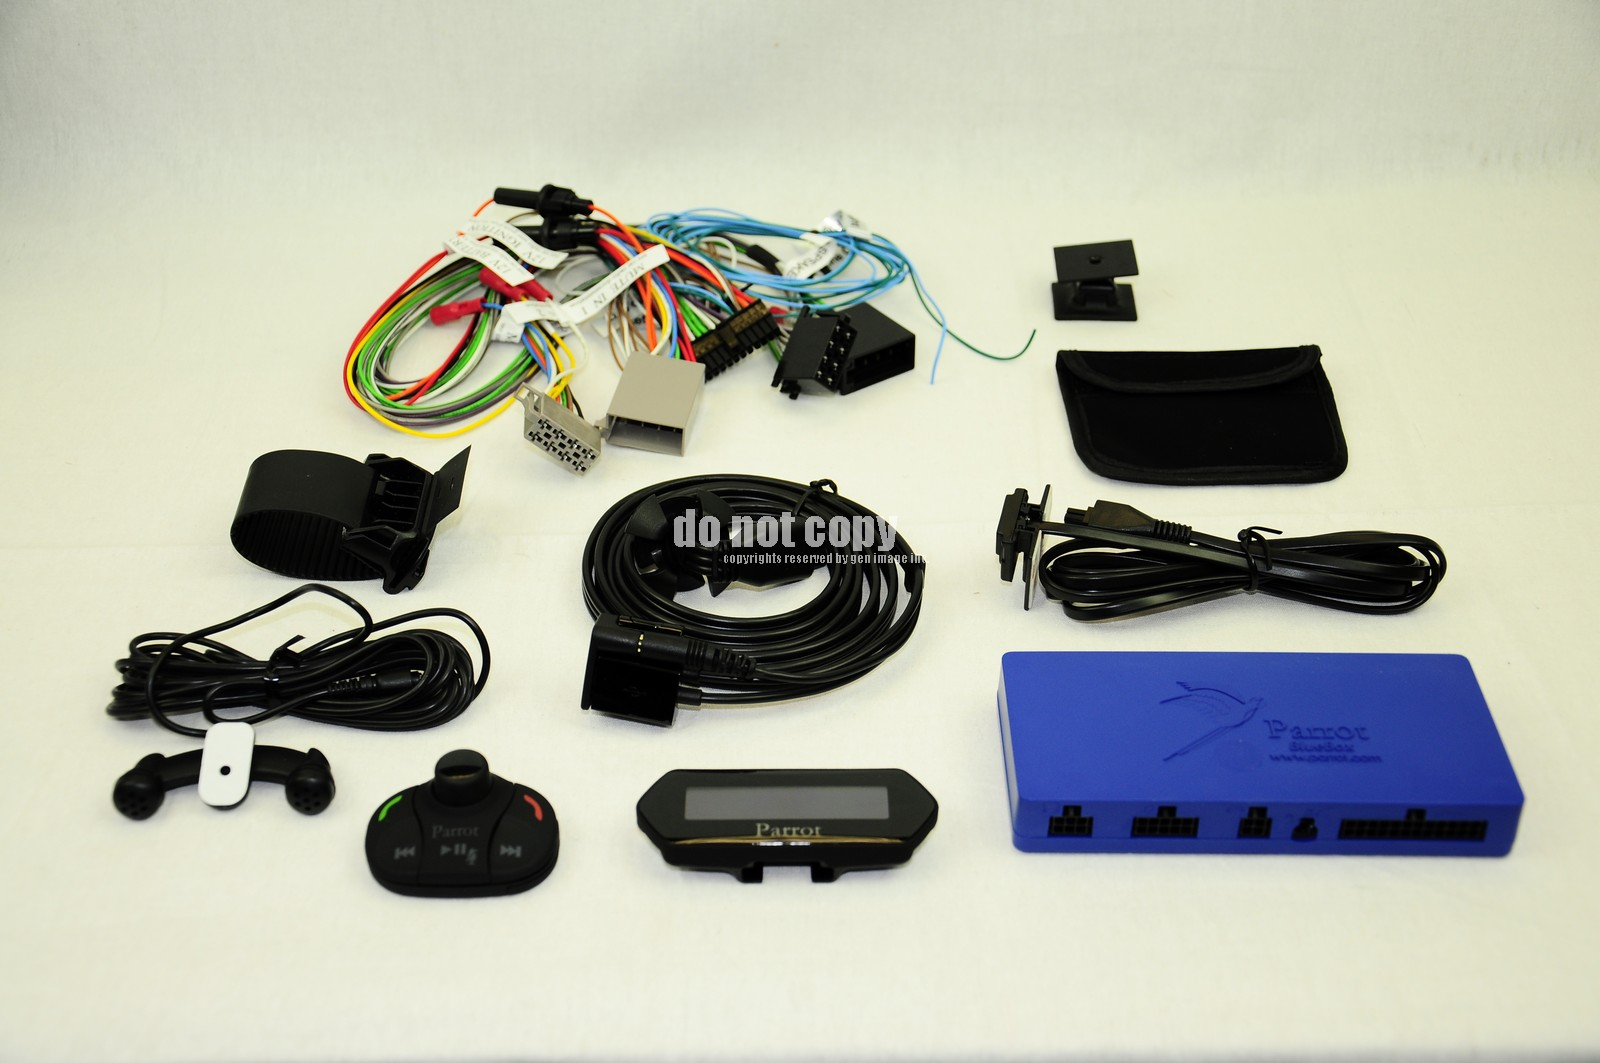 parrot mki9100 cell phone bluetooth car kit with music streaming ebay. Black Bedroom Furniture Sets. Home Design Ideas